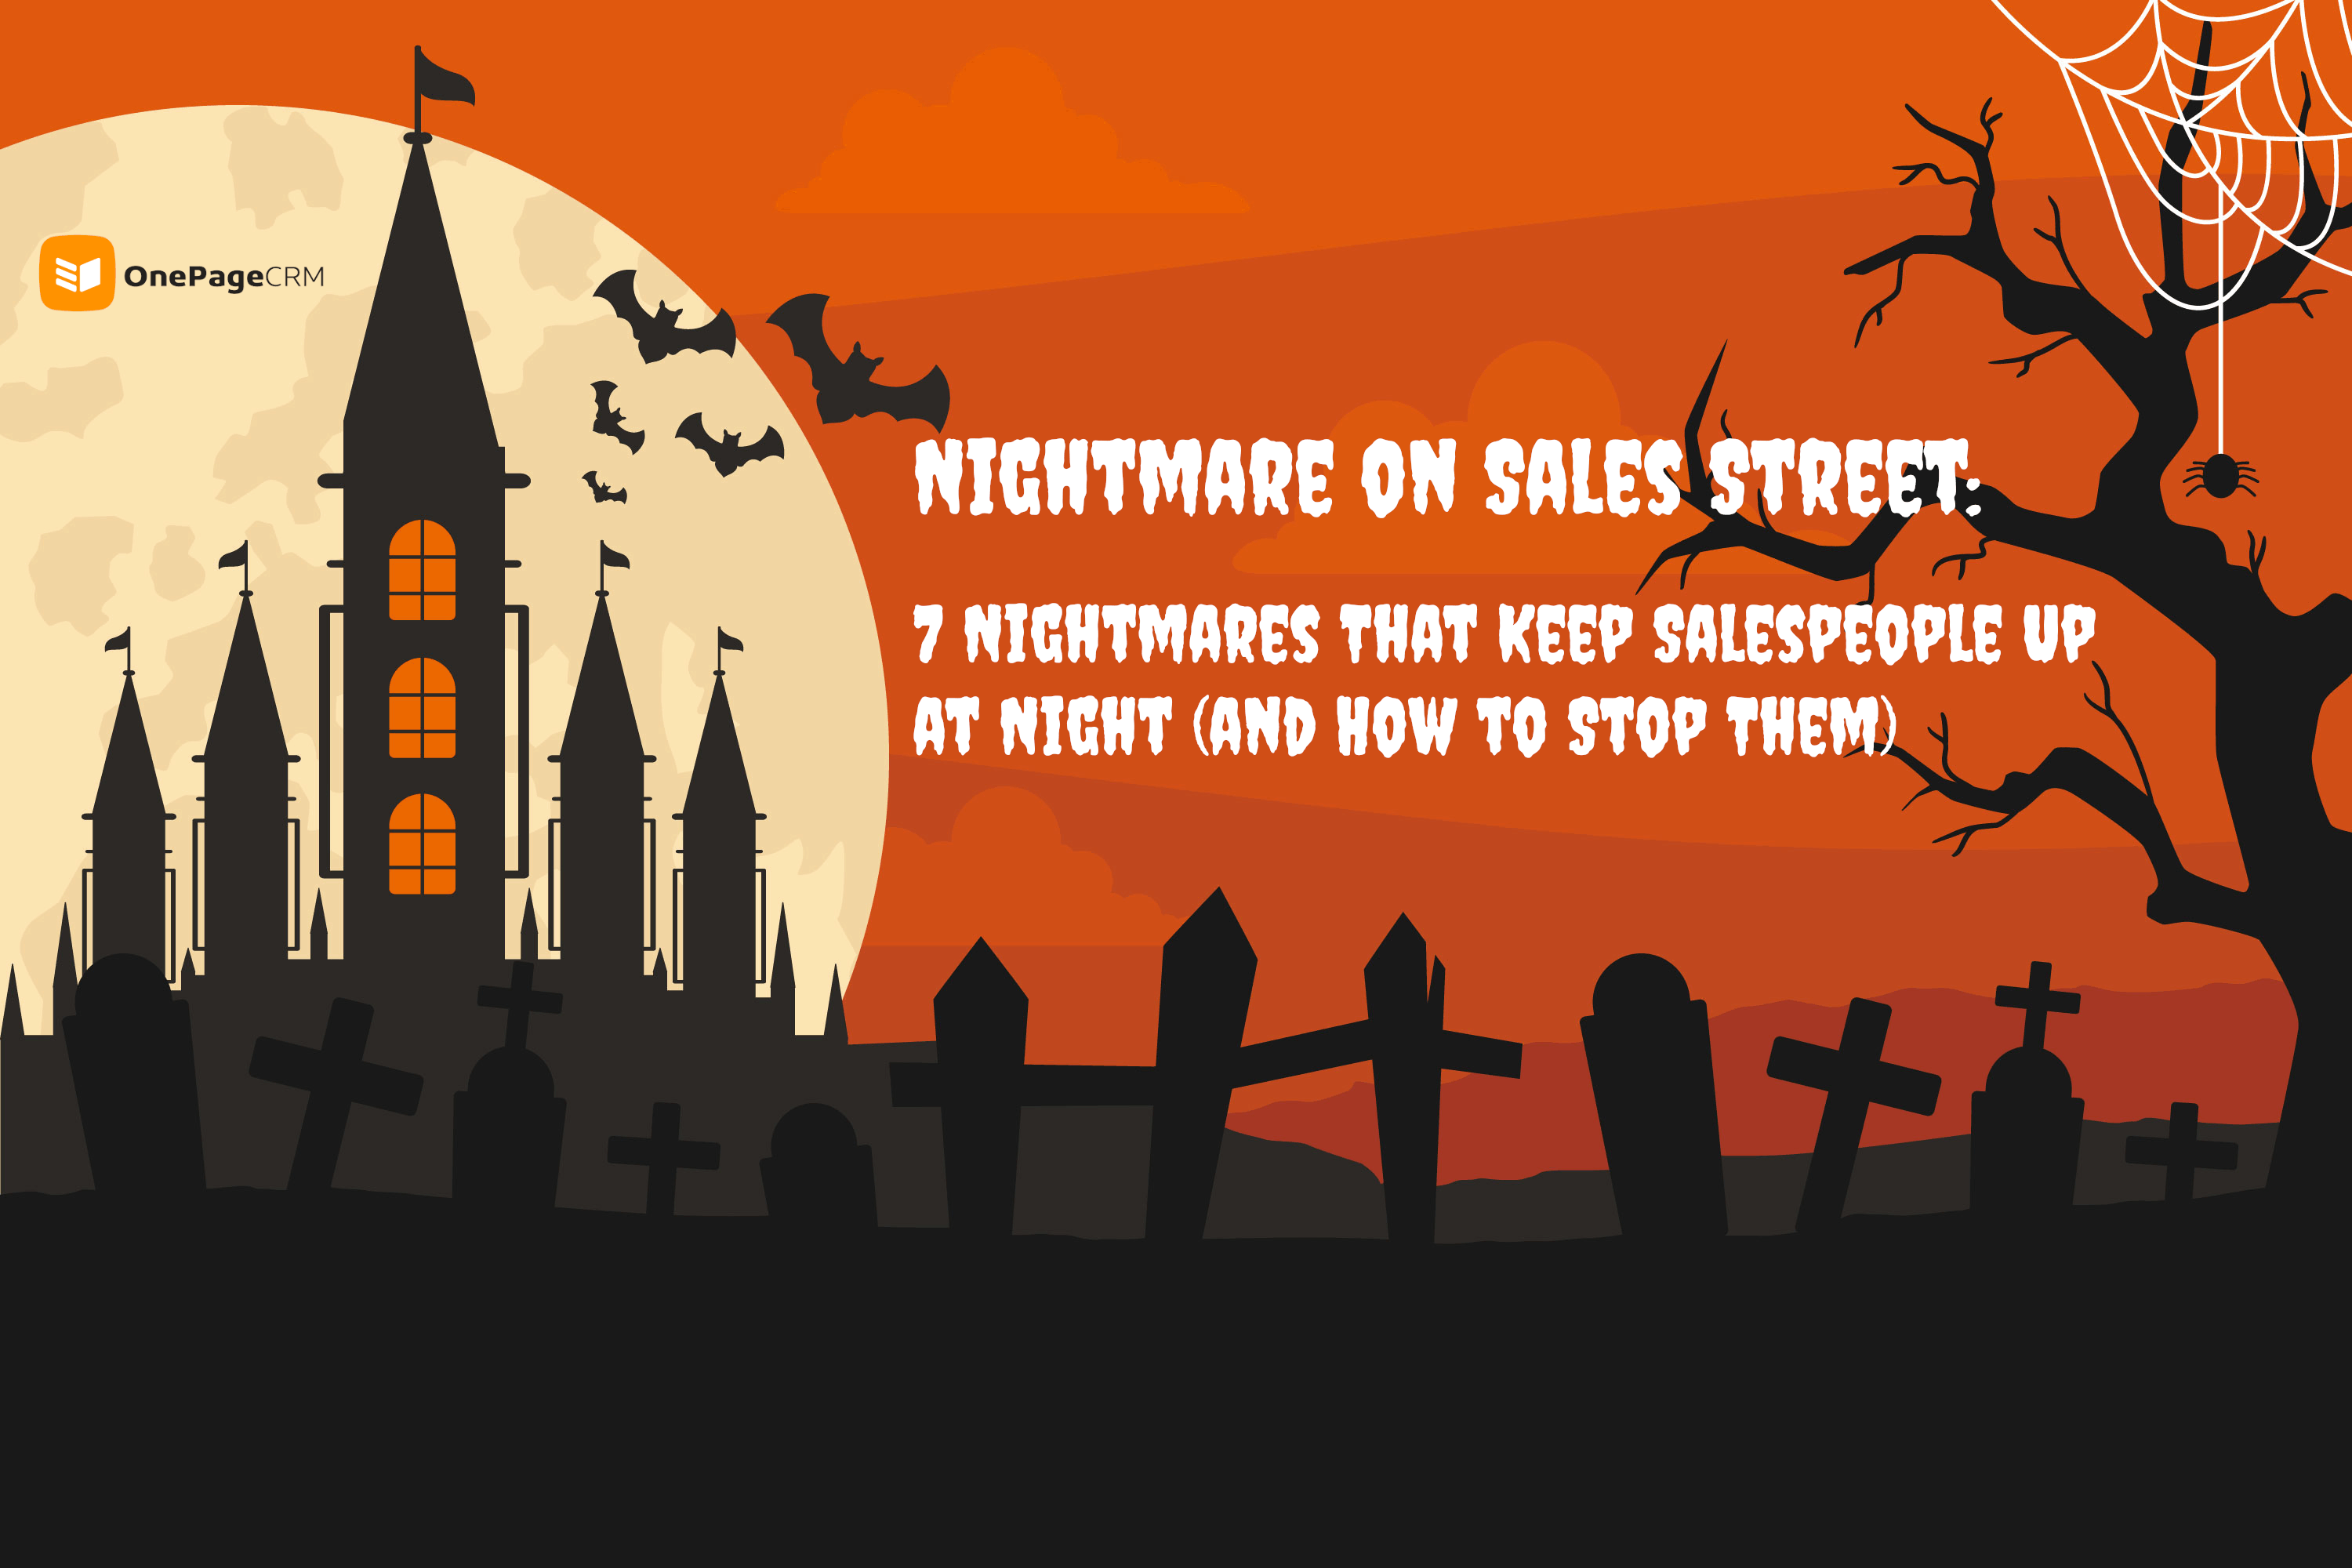 Nightmare on Sales Street: 7 Nightmares That Keep Salespeople Up at Night (and How to Stop Them)